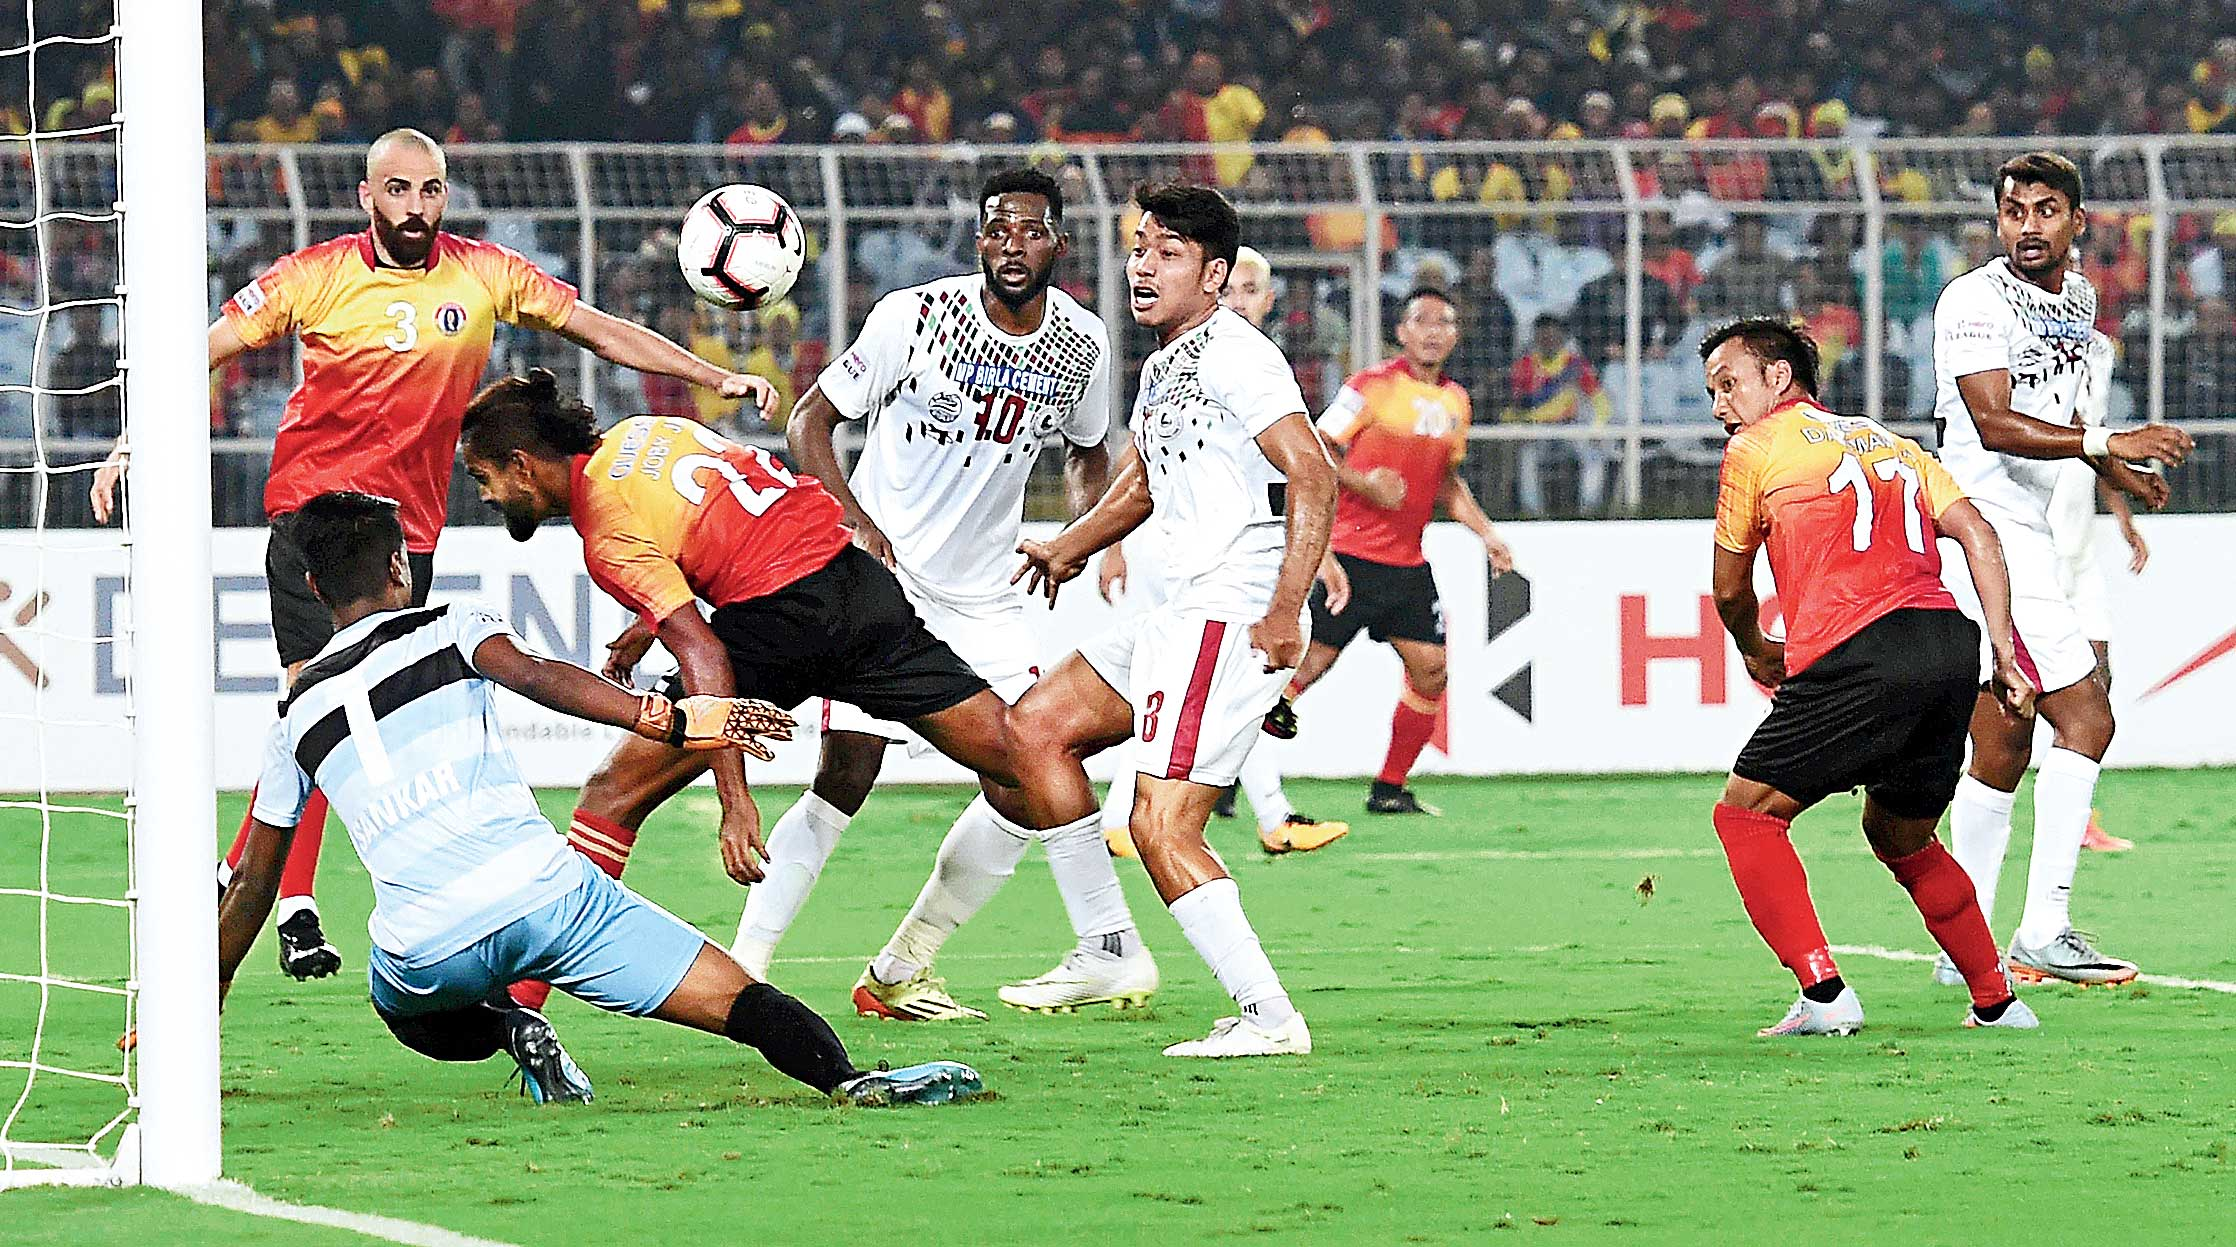 The Yuvabharati crowd might not witness these scenes in the return leg of the I-league derby